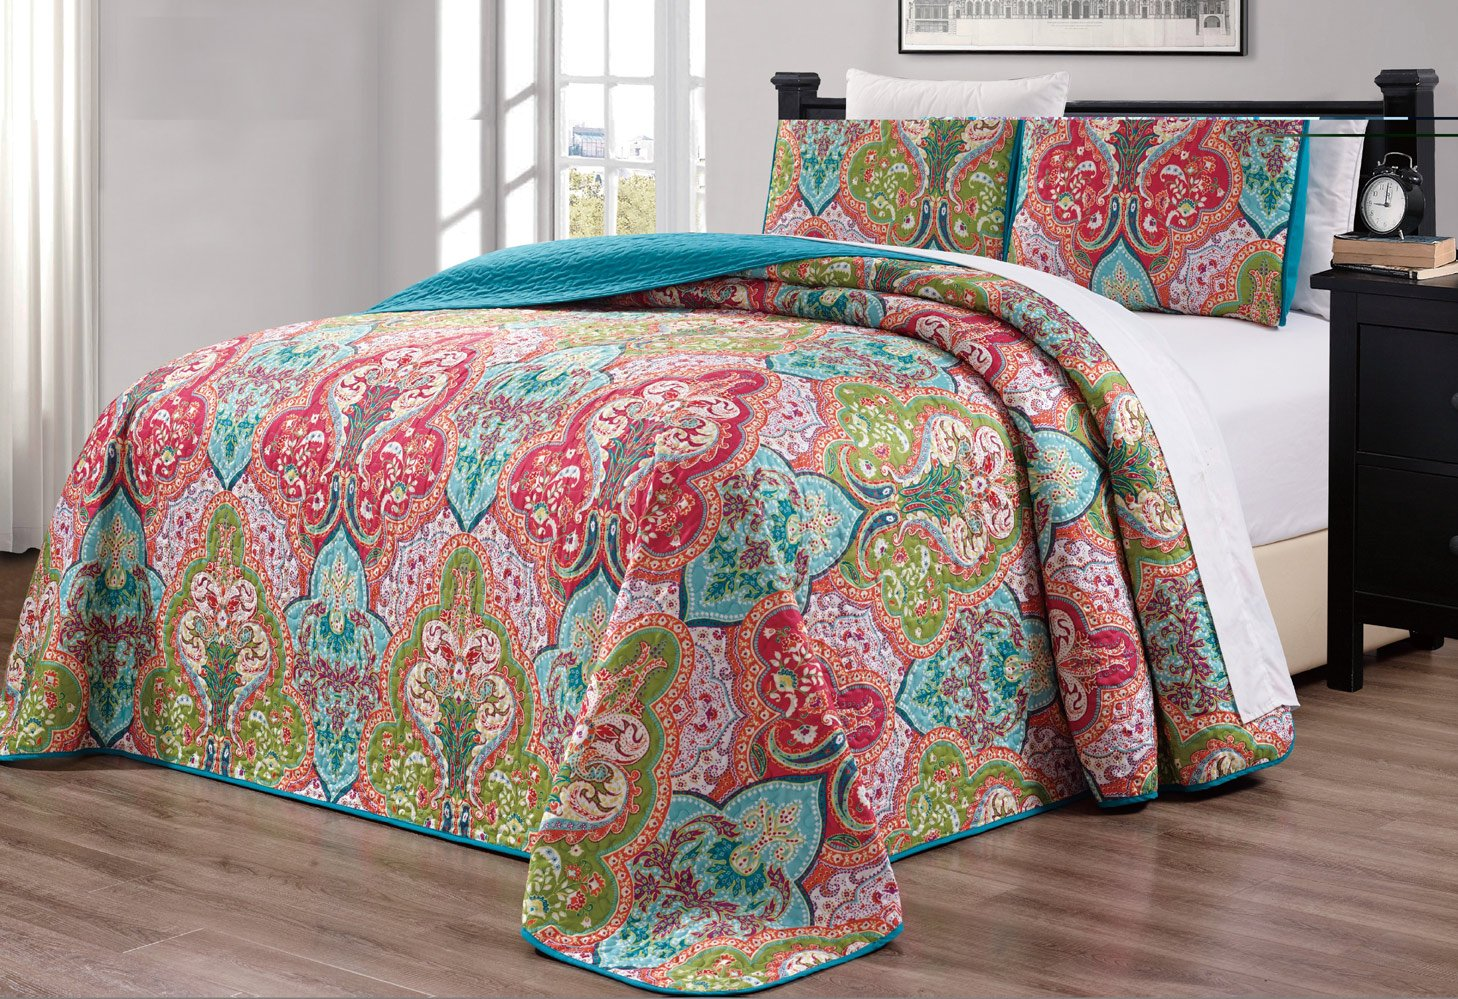 "3-Piece Oversize (115"" X 95"") Fine Printed Prewashed Boho Decor Quilt Set Reversible Bedspread Coverlet (California) Cal King Size Bed Cover (Turquoise Blue, Sage Green, Orange, Terra Cotta Red)"